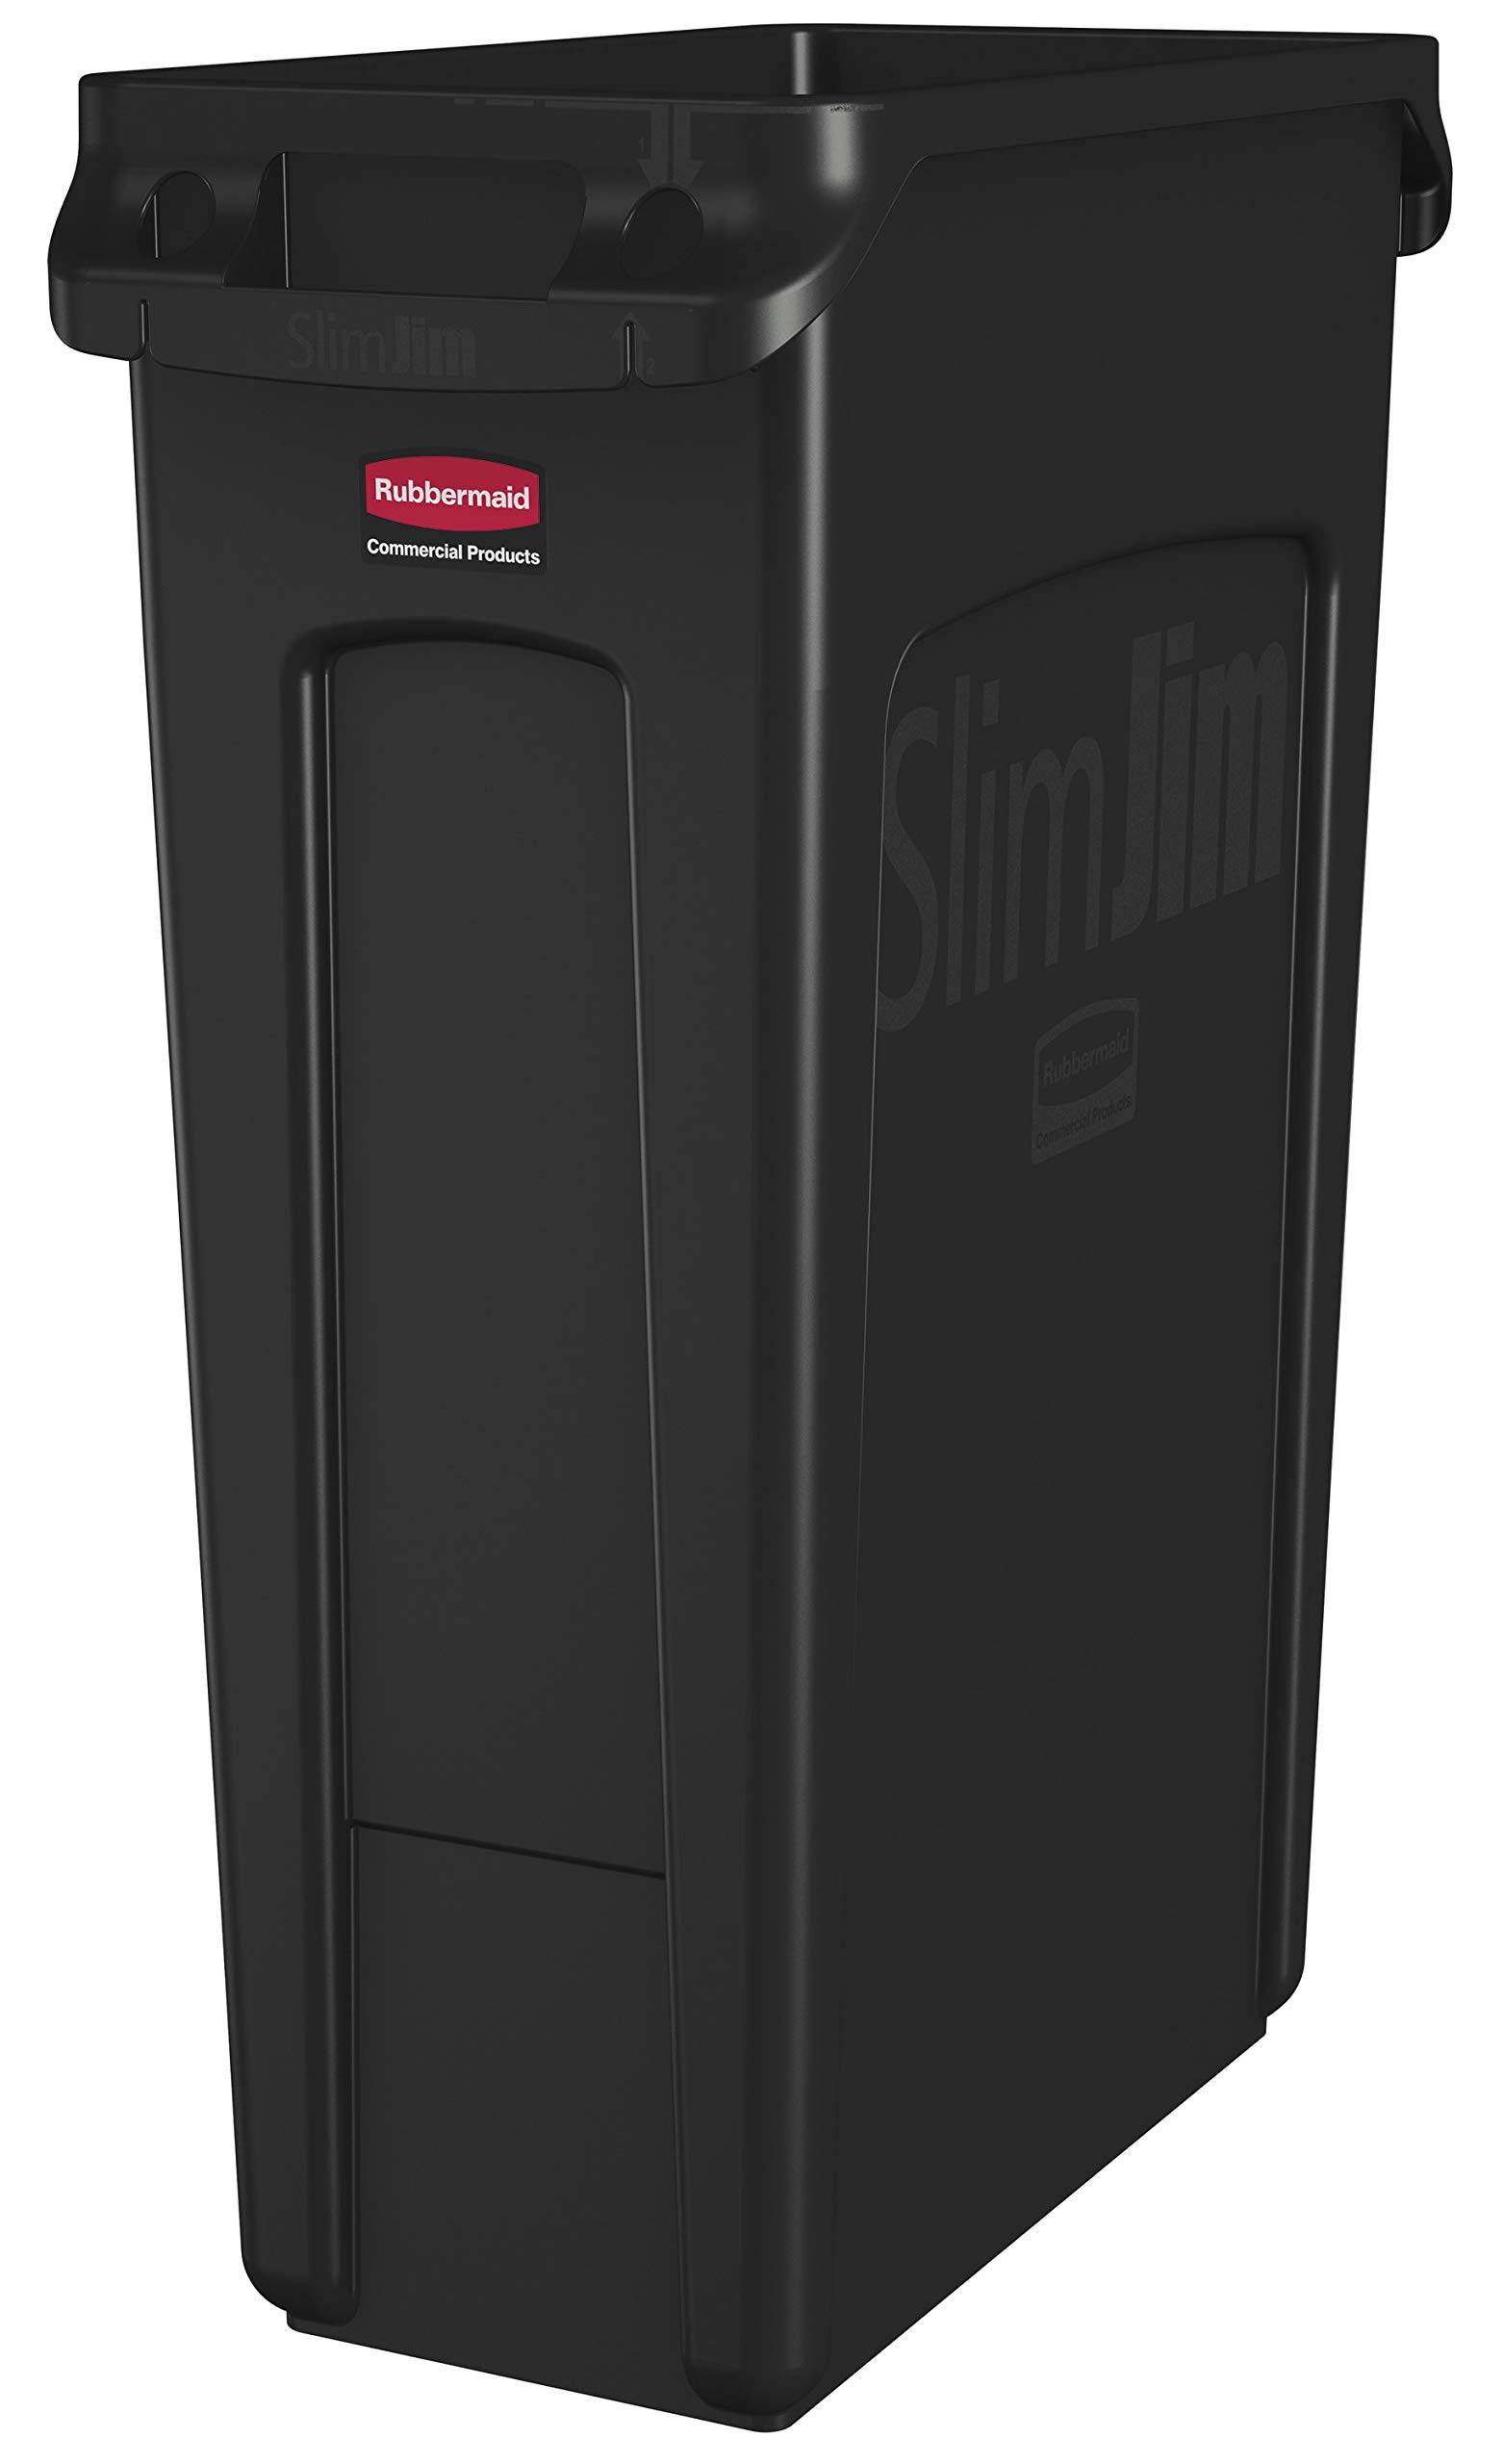 Rubbermaid Commercial Products Slim Jim Plastic Rectangular Trash/Garbage Can with Venting Channels, 23 Gallon, Black (FG354060BLA) by Rubbermaid Commercial Products